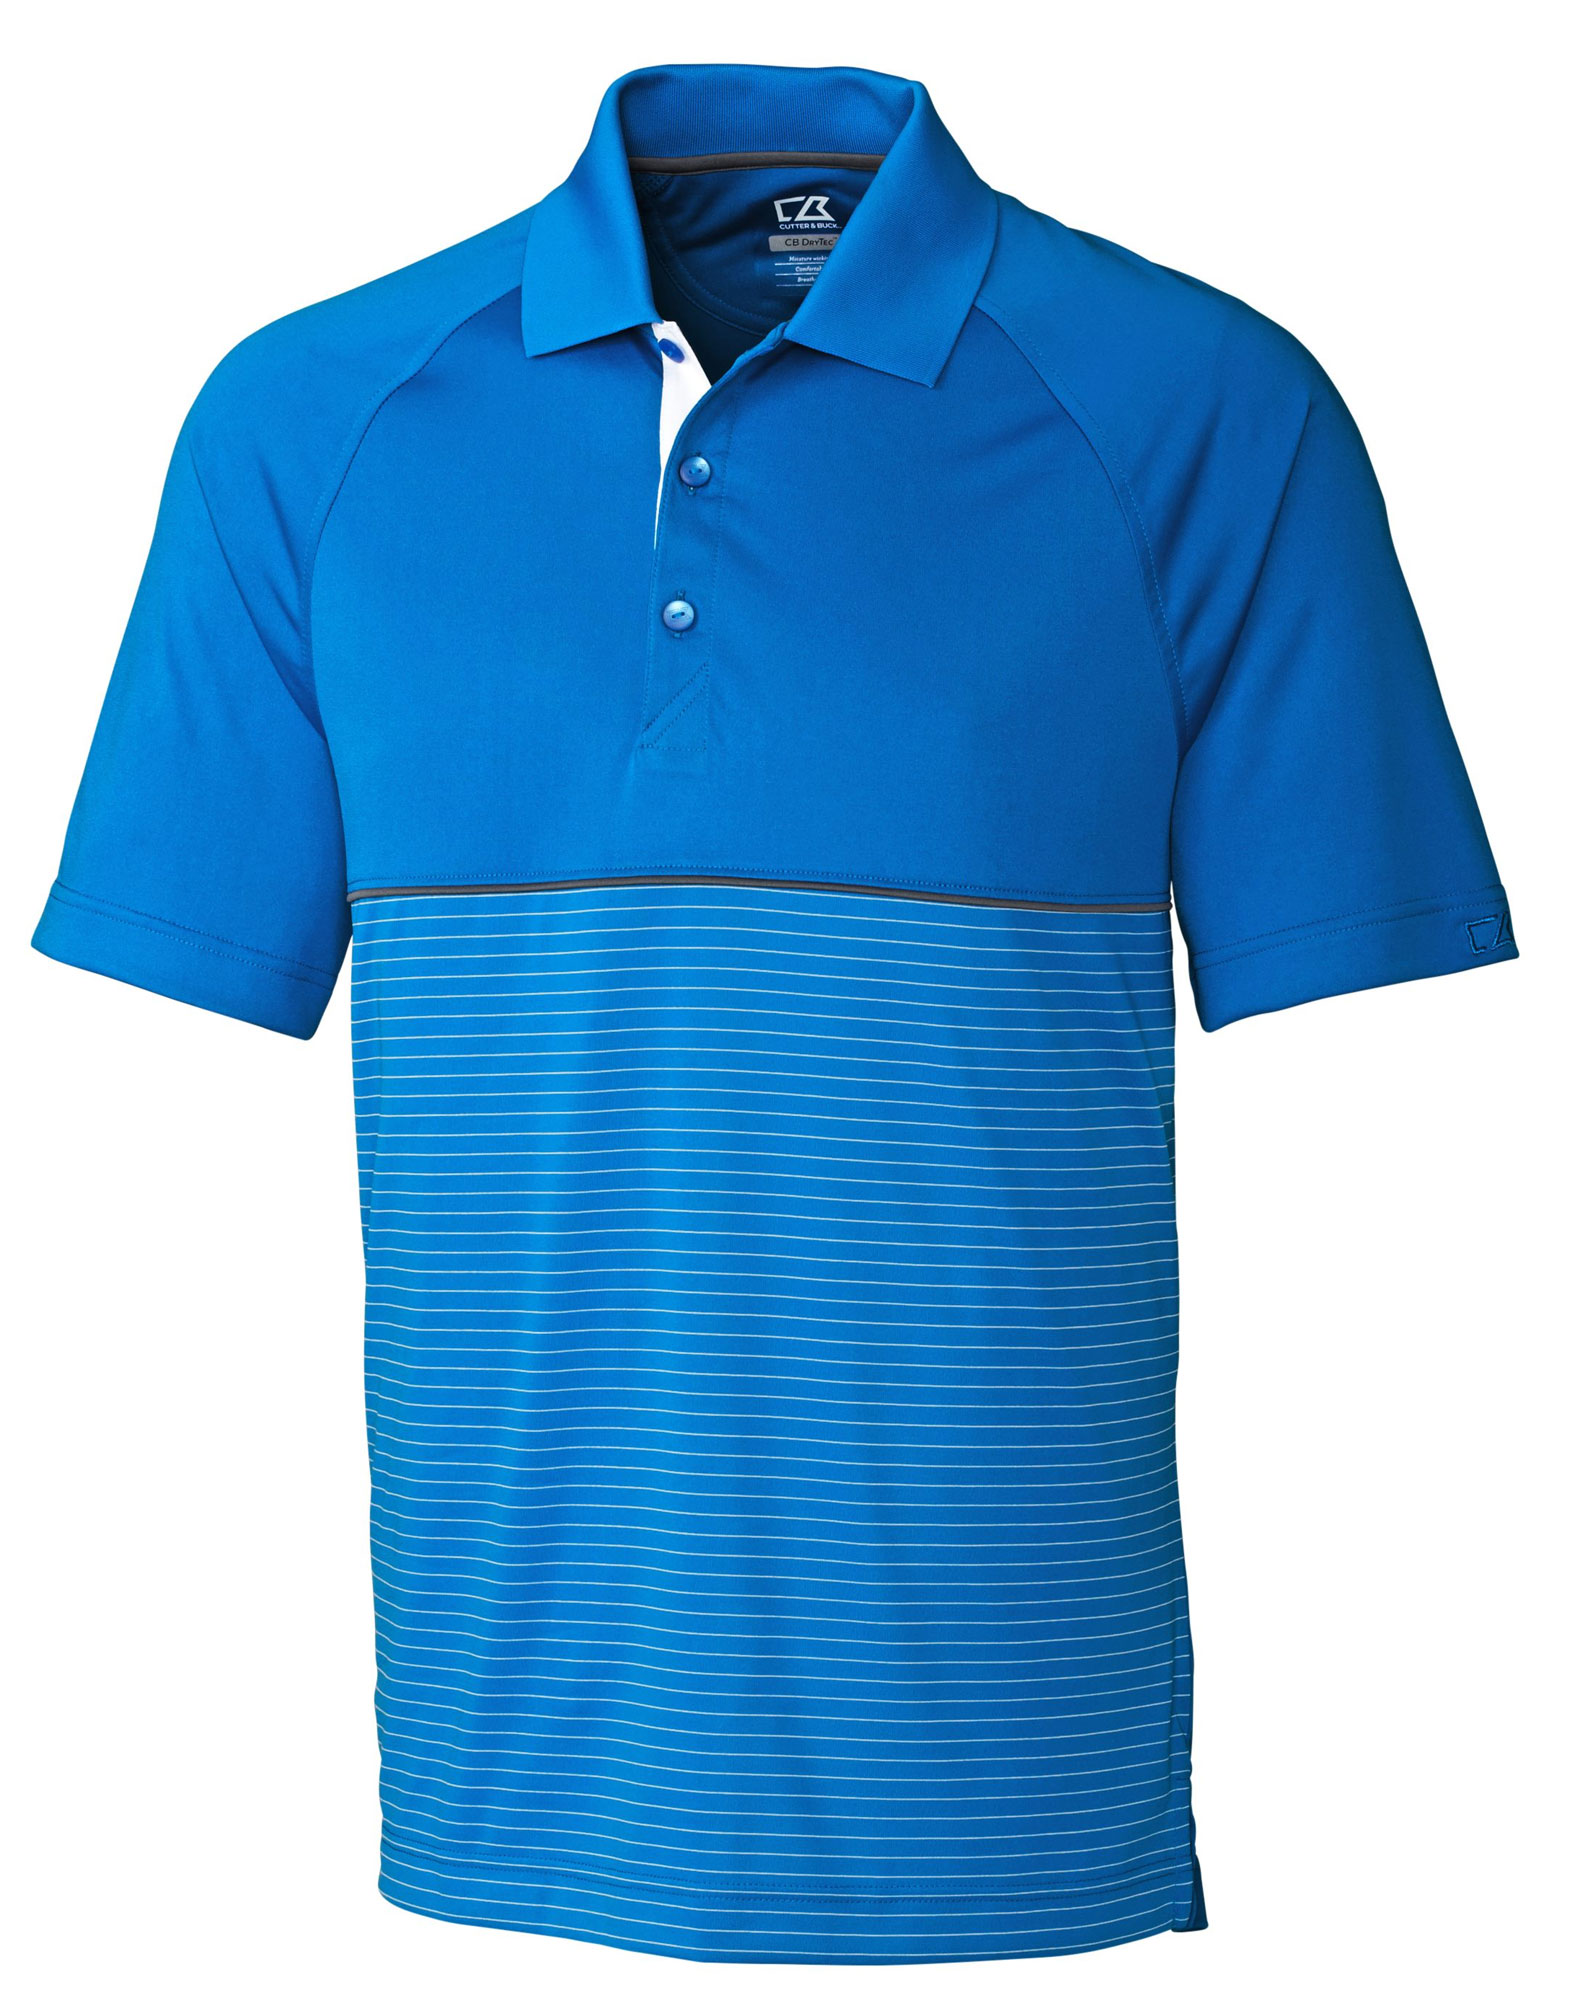 Mens CB DryTec™ Junction Stripe Hybrid Polo